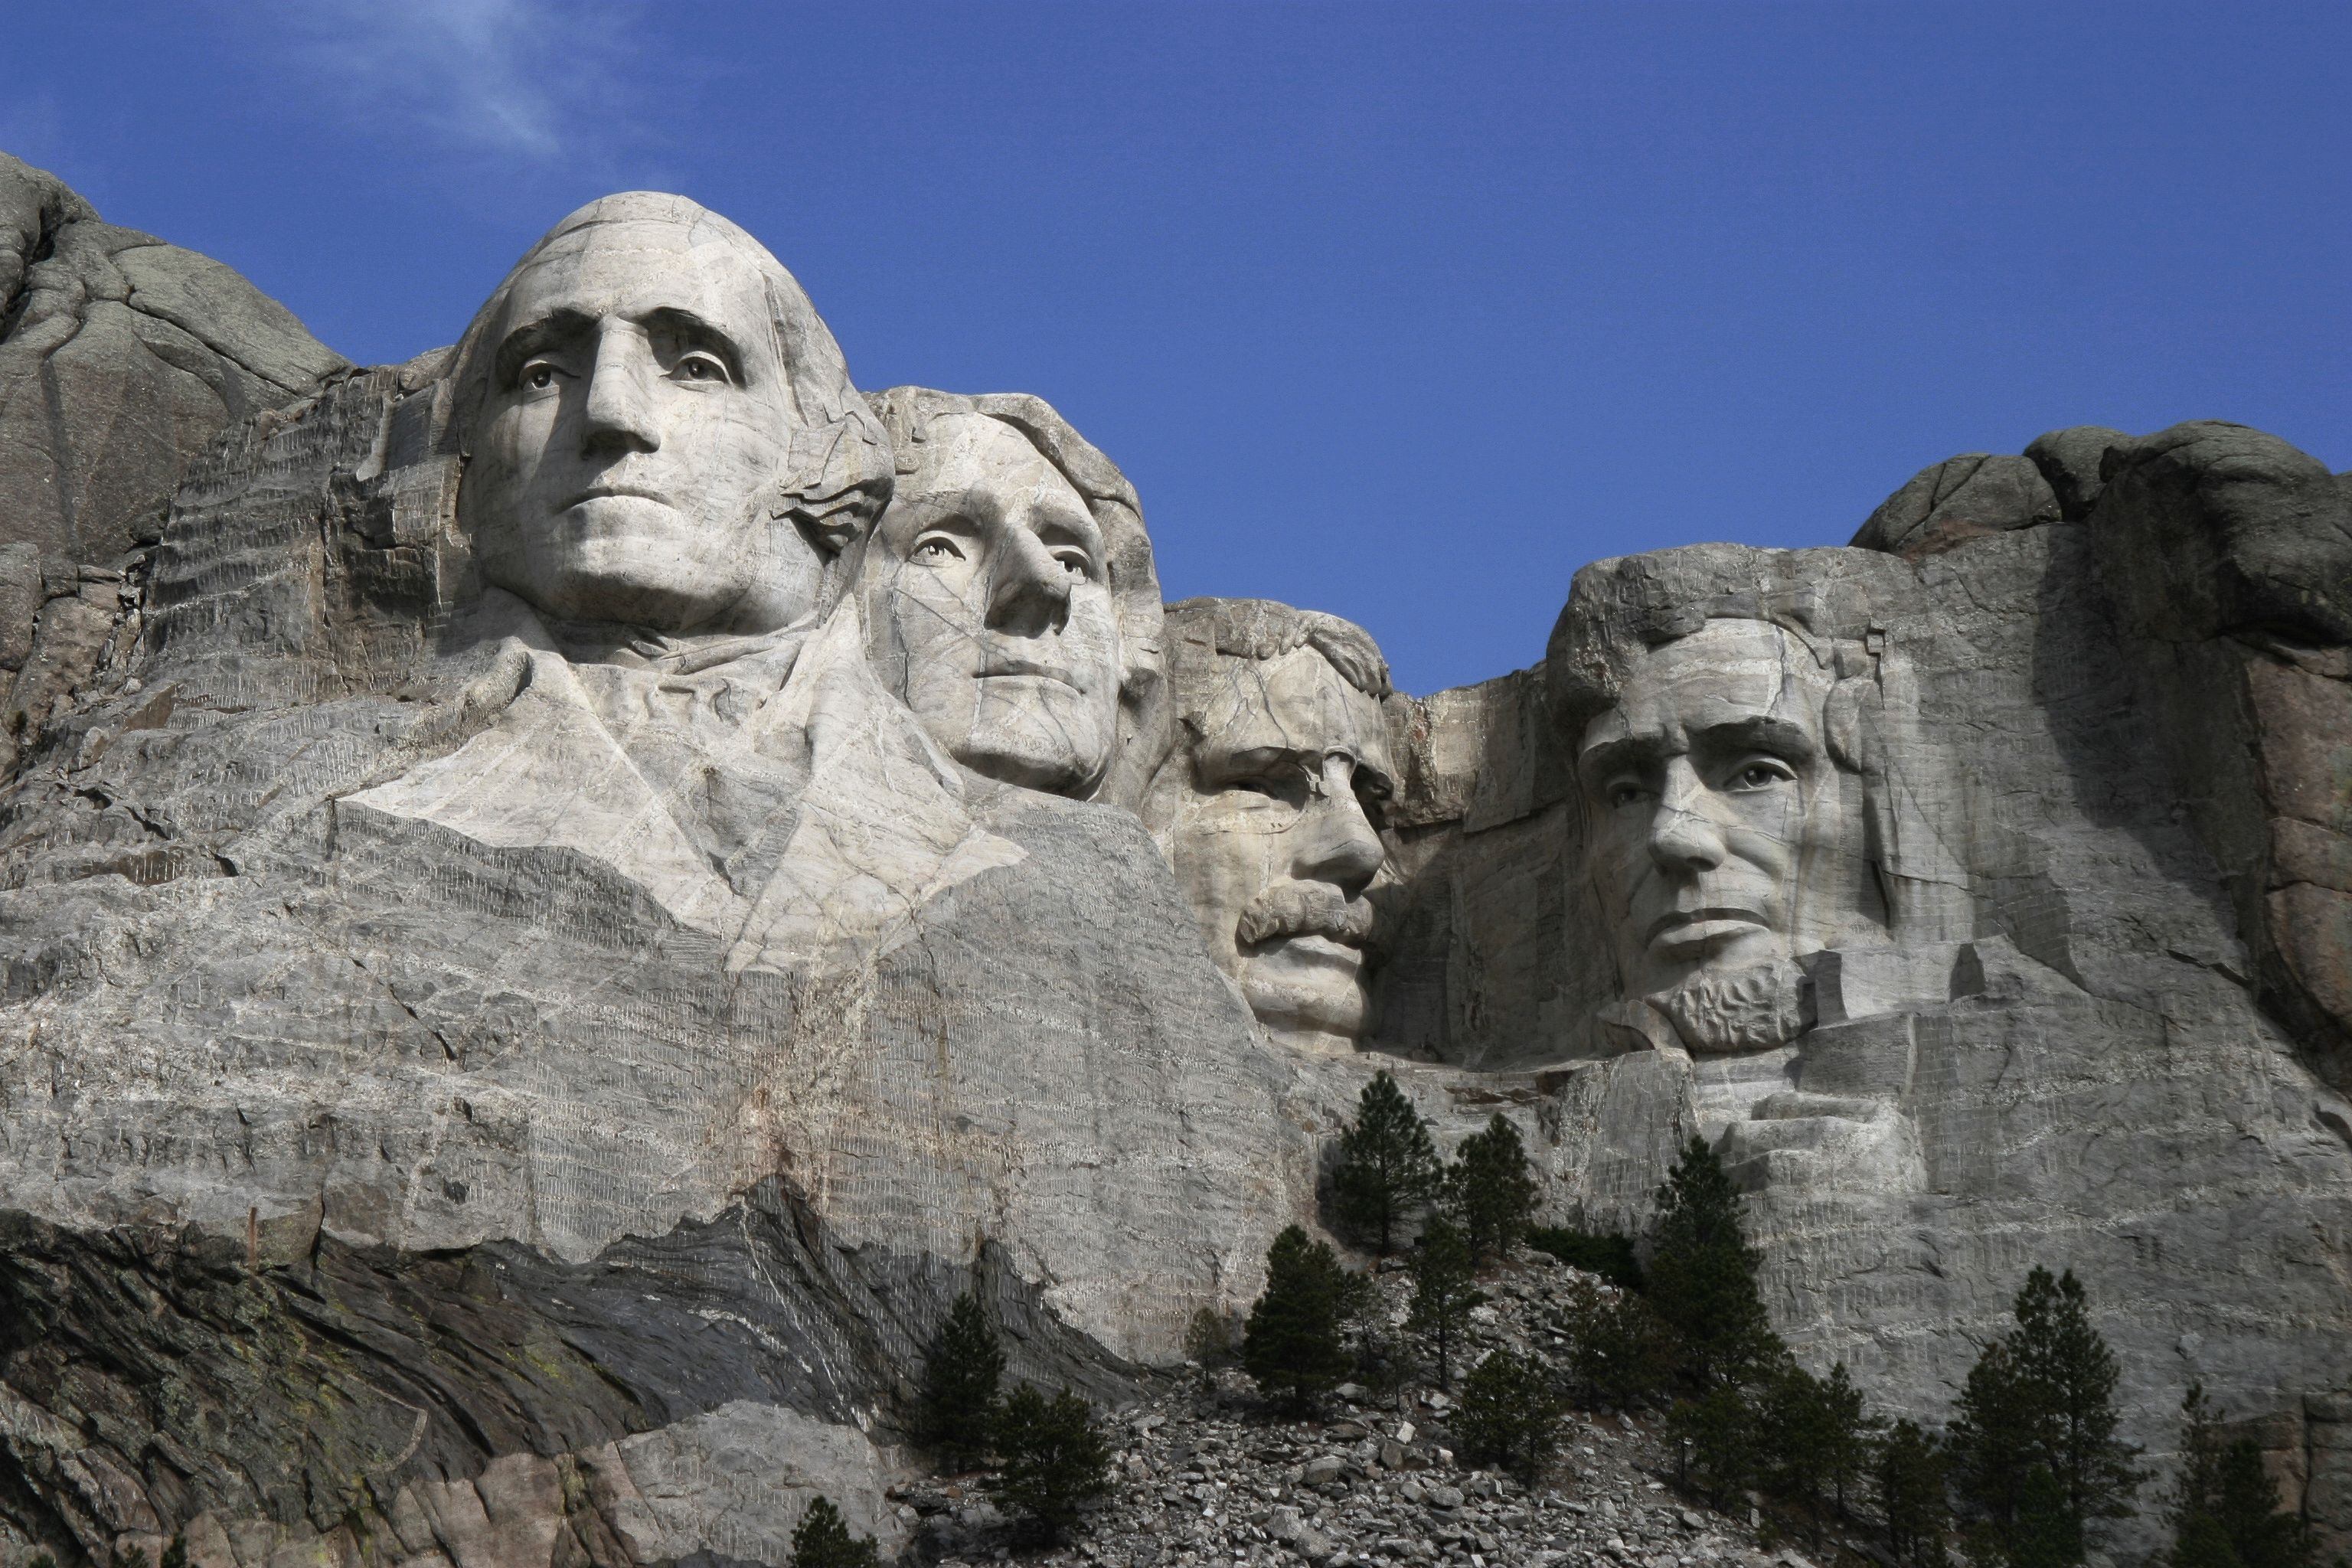 The Stone Heads Built into the Rock at Mount Rushmore USA